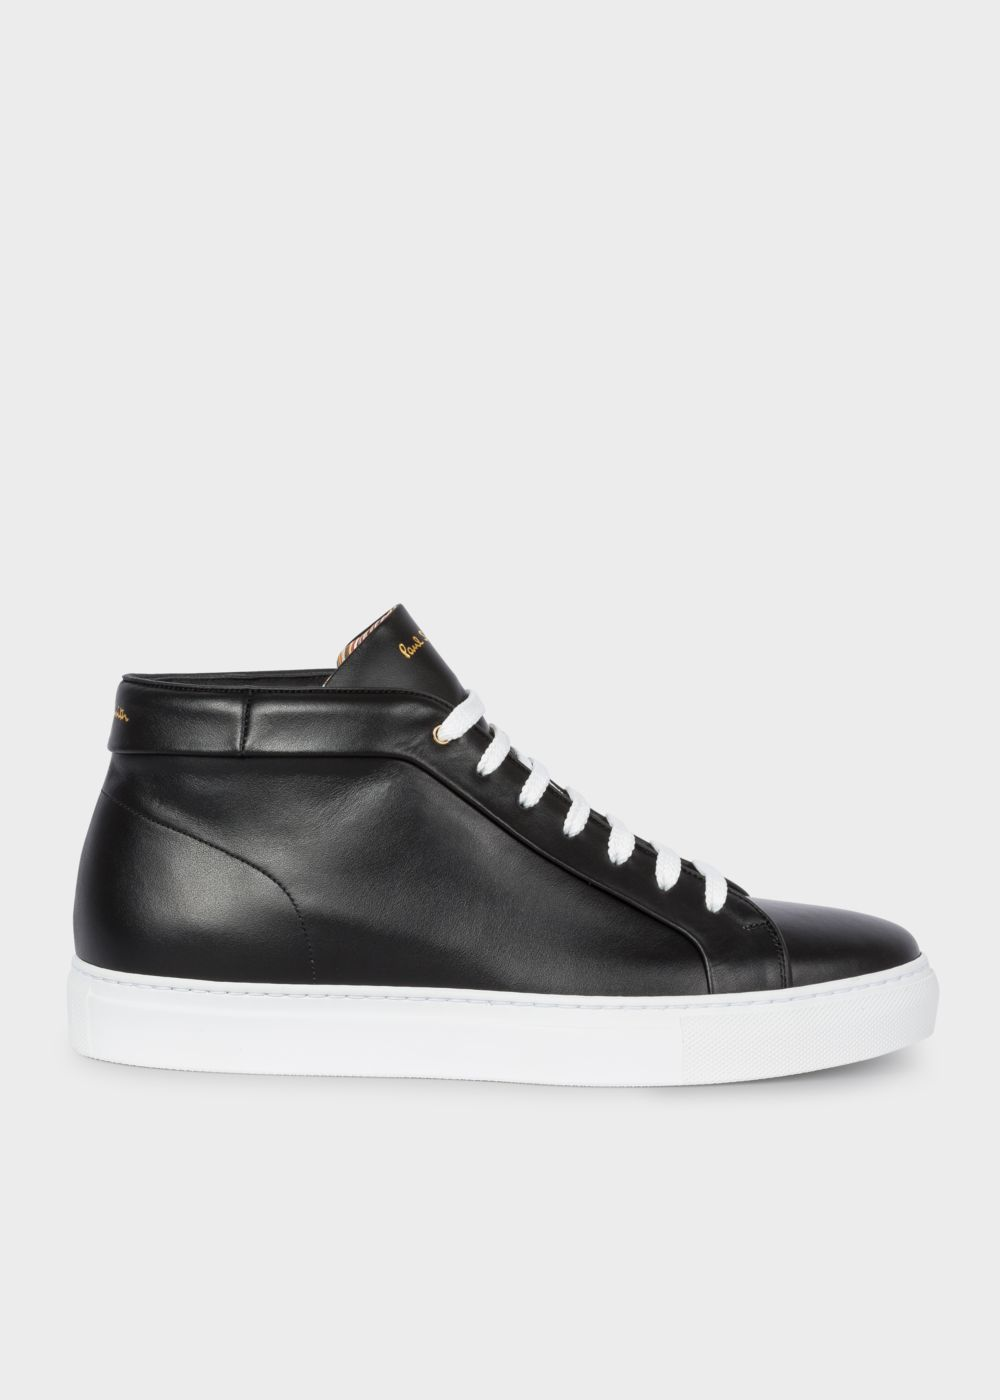 Trainers by Paul Smith